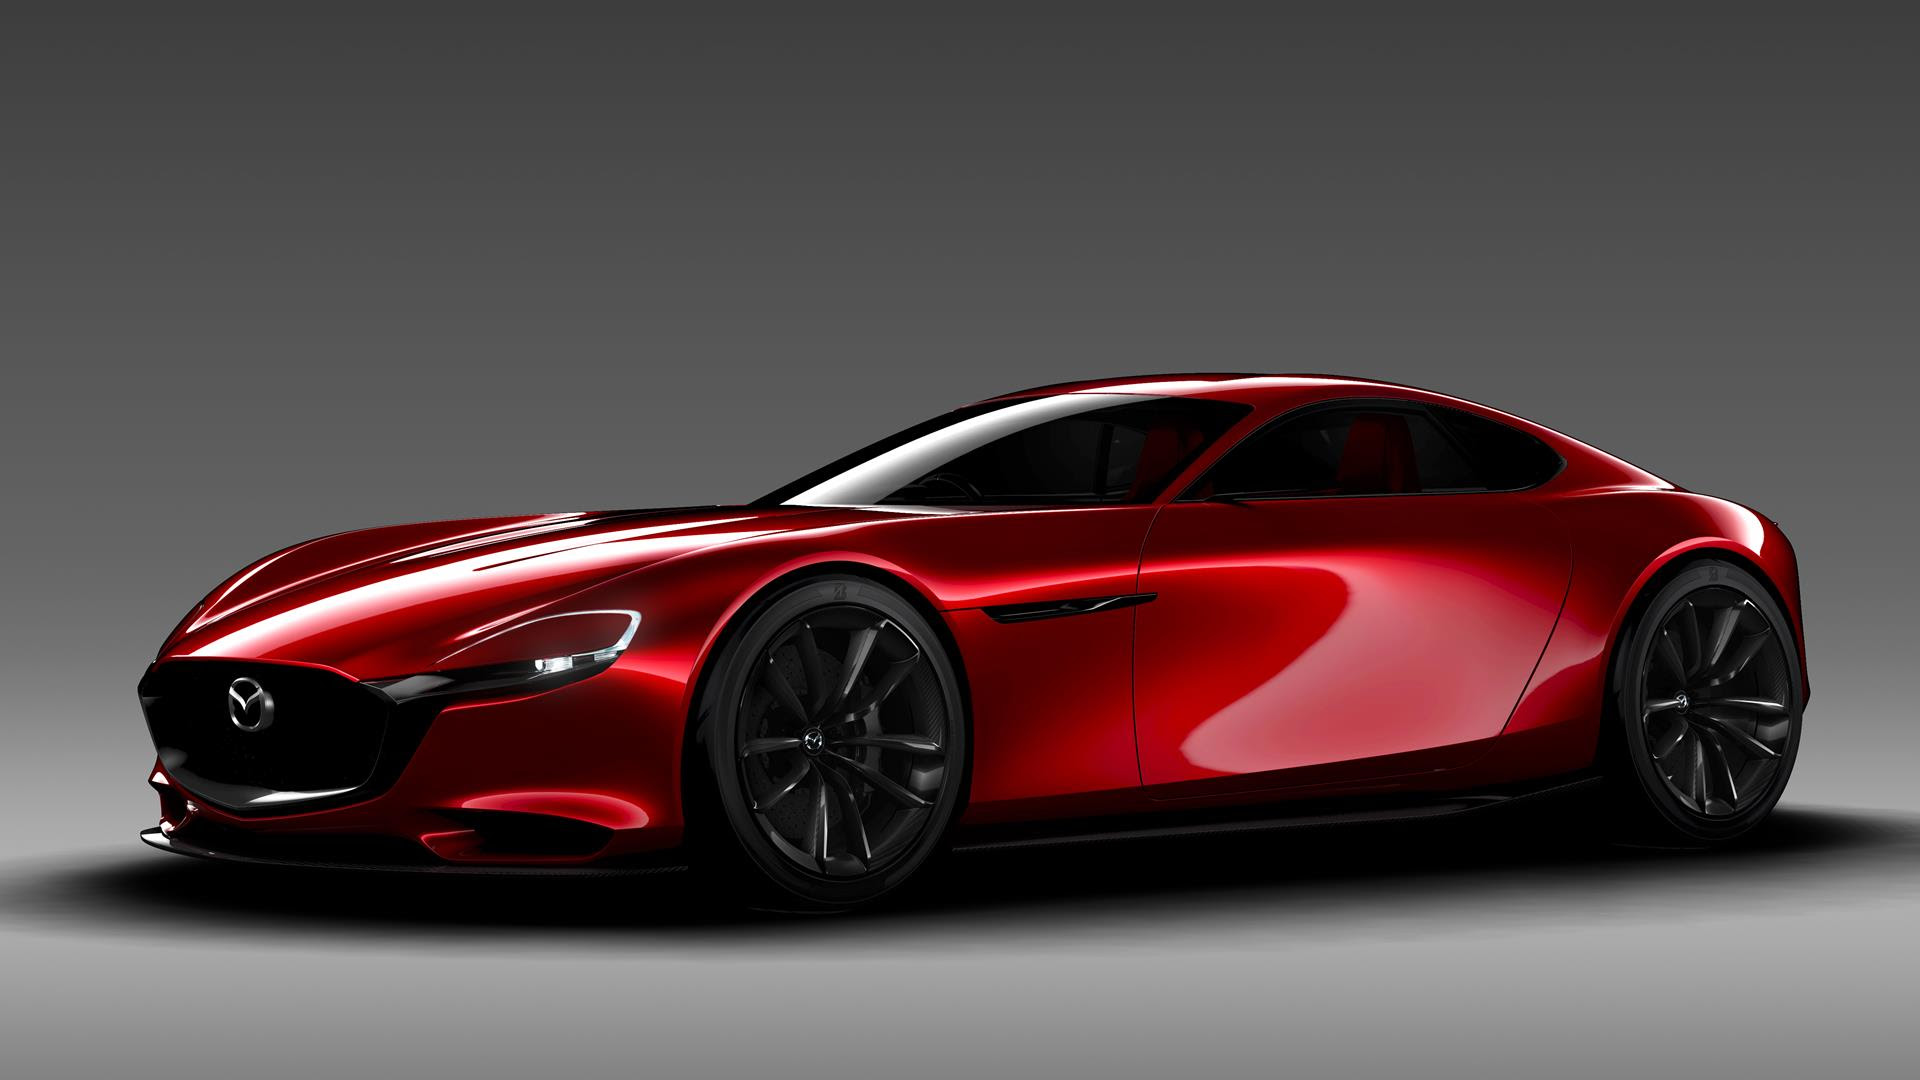 2015 mazda rxvision concept pictures news research